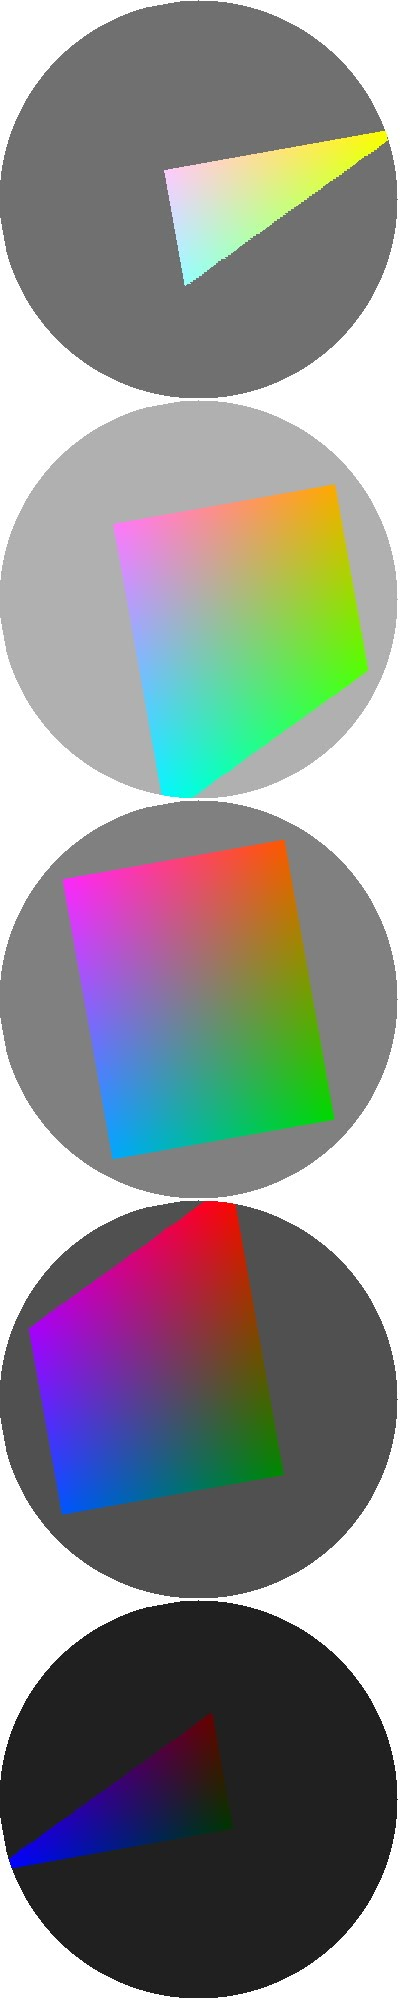 YHCh color wheels at Y= 32, 80, 128, 176, 224